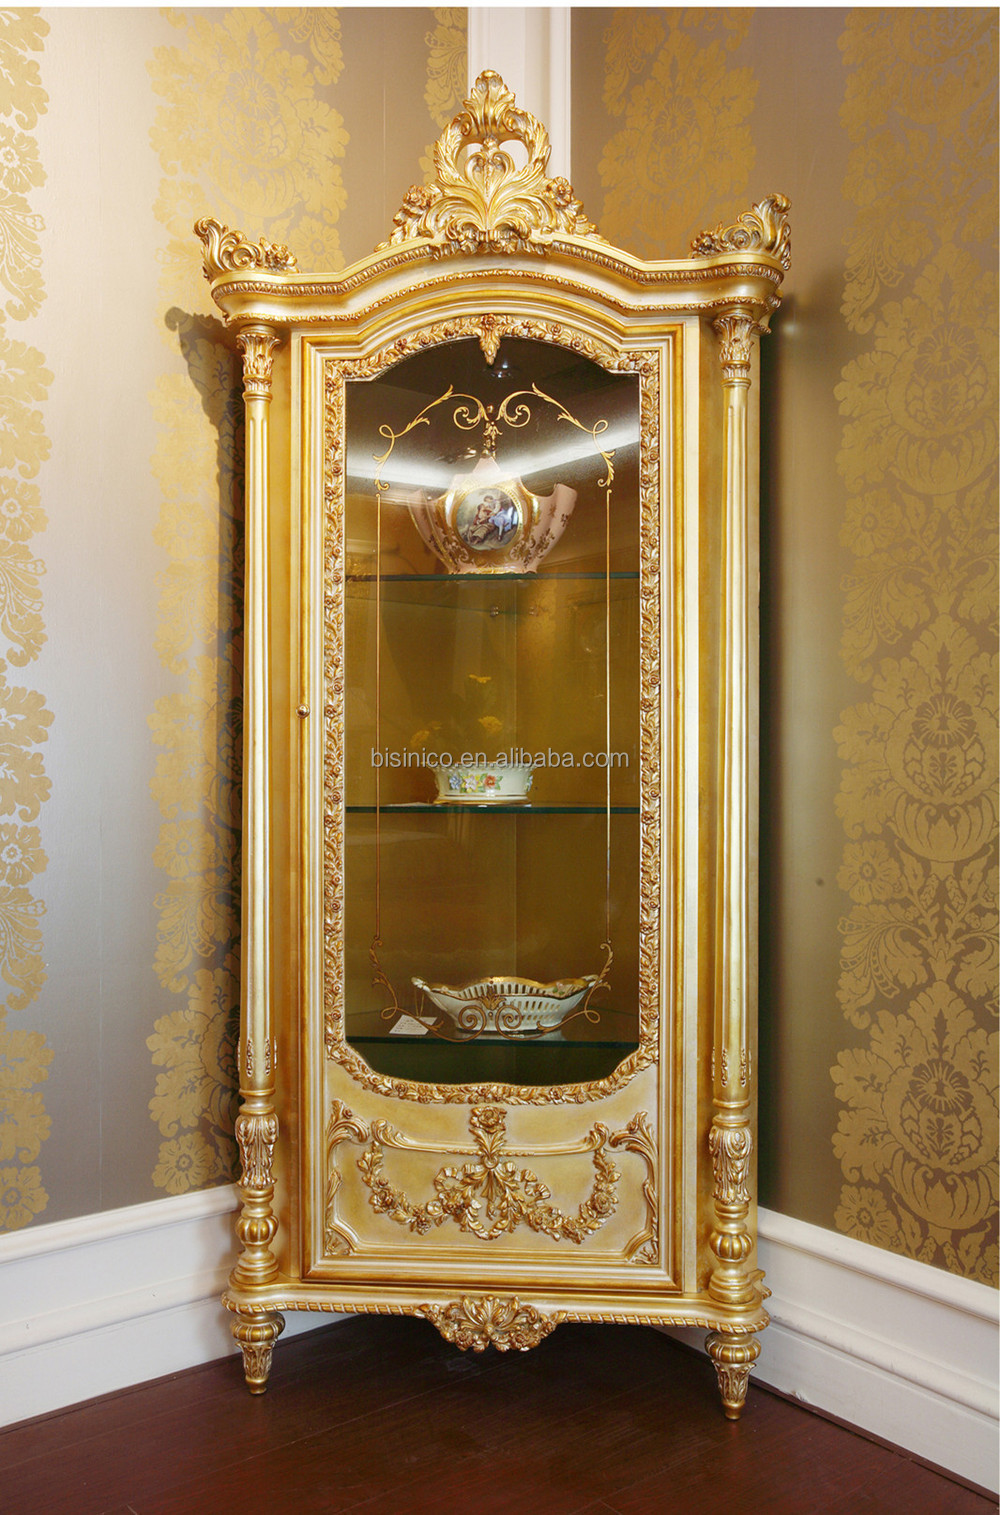 Luxury French Louis XV 24K Gold Leaf Display Corner Cabinet/ European Vintage Palace Wooden Decorative Wine Corner Cabinet